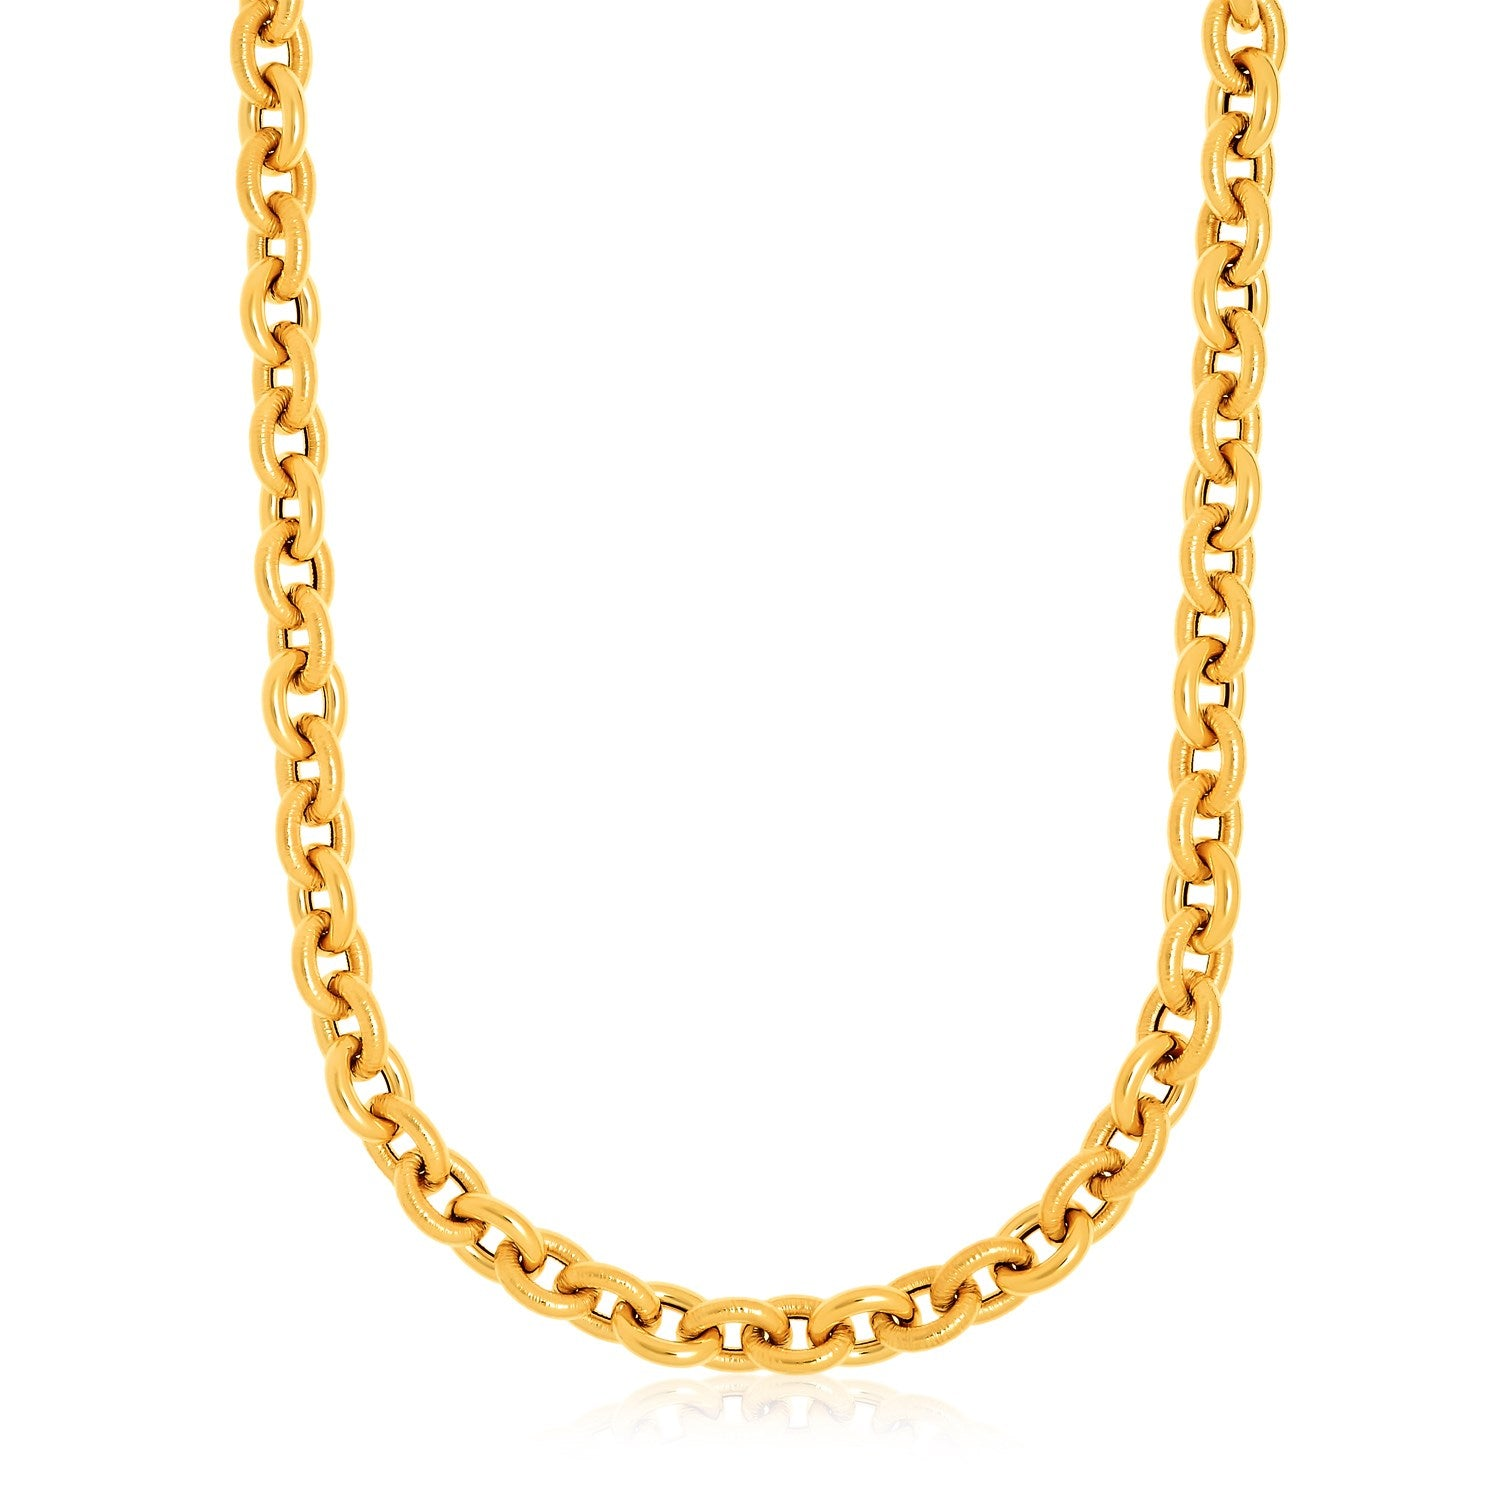 14K Yellow Gold Cable Chain with Texture Necklace